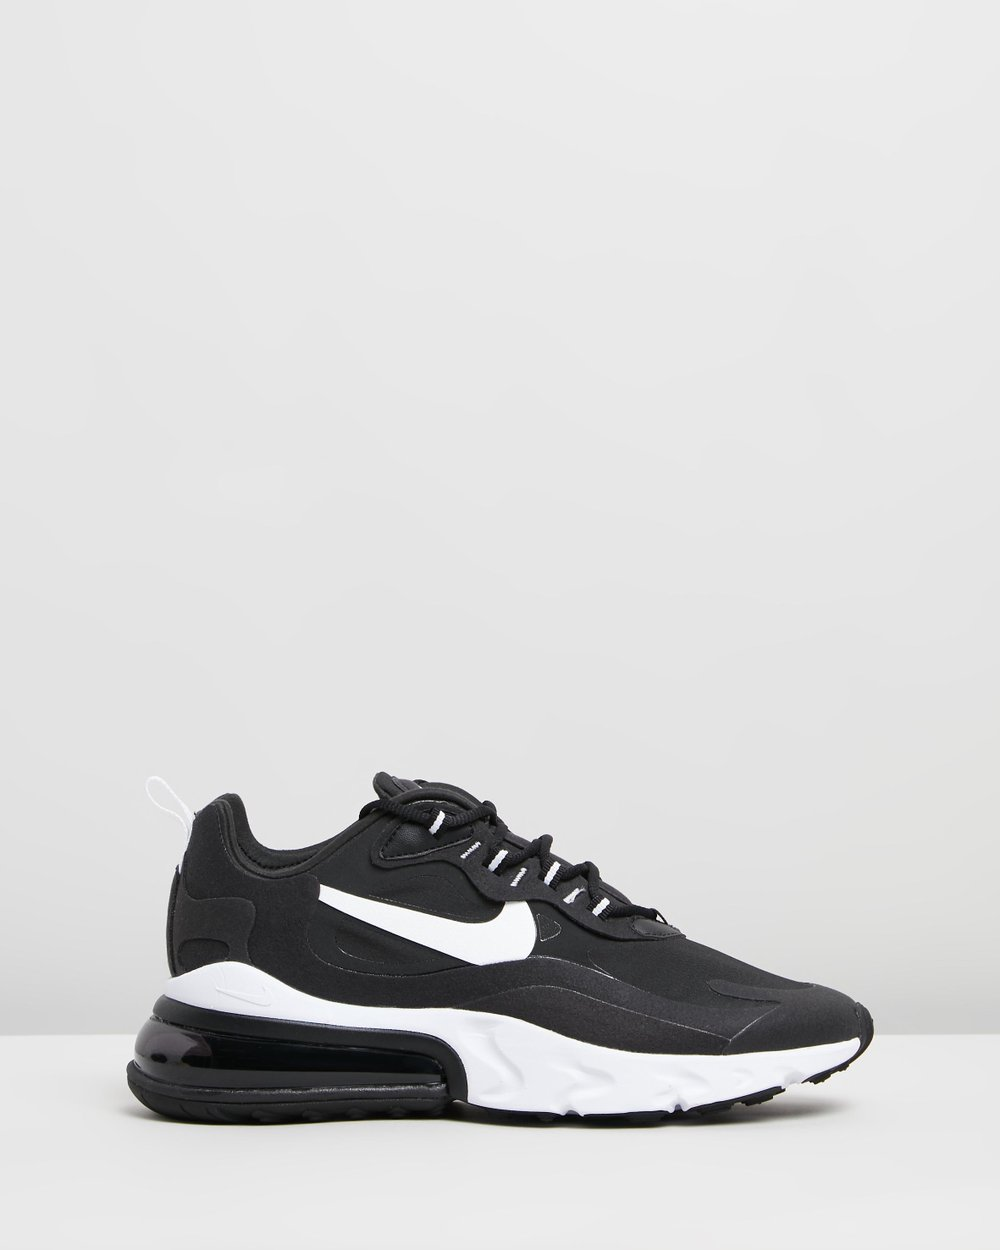 Air Max 270 React Women S By Nike Online The Iconic Australia